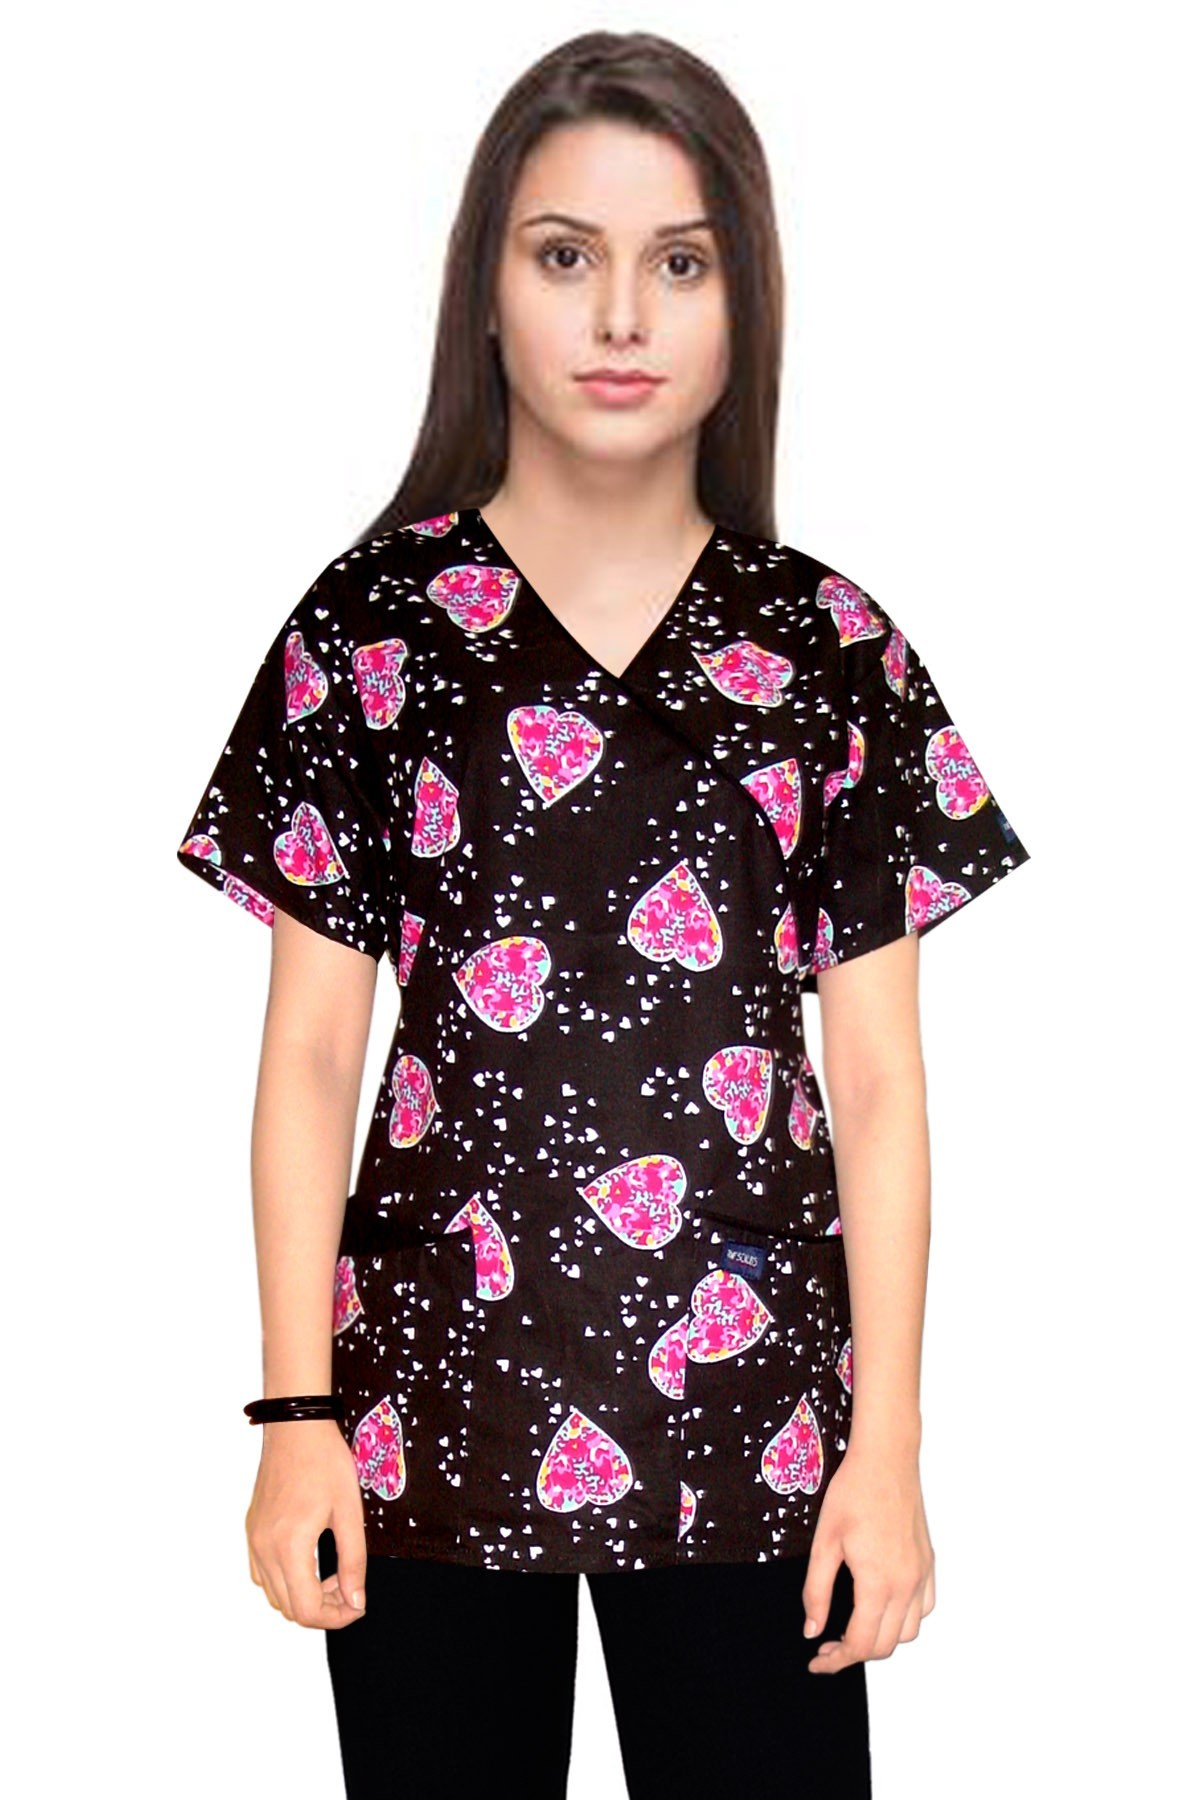 Printed scrub set mock wrap 5 pocket half sleeve in Pink Blue Big heart print with black piping  (top 3 pocket with bottom 2 pocket boot cut)